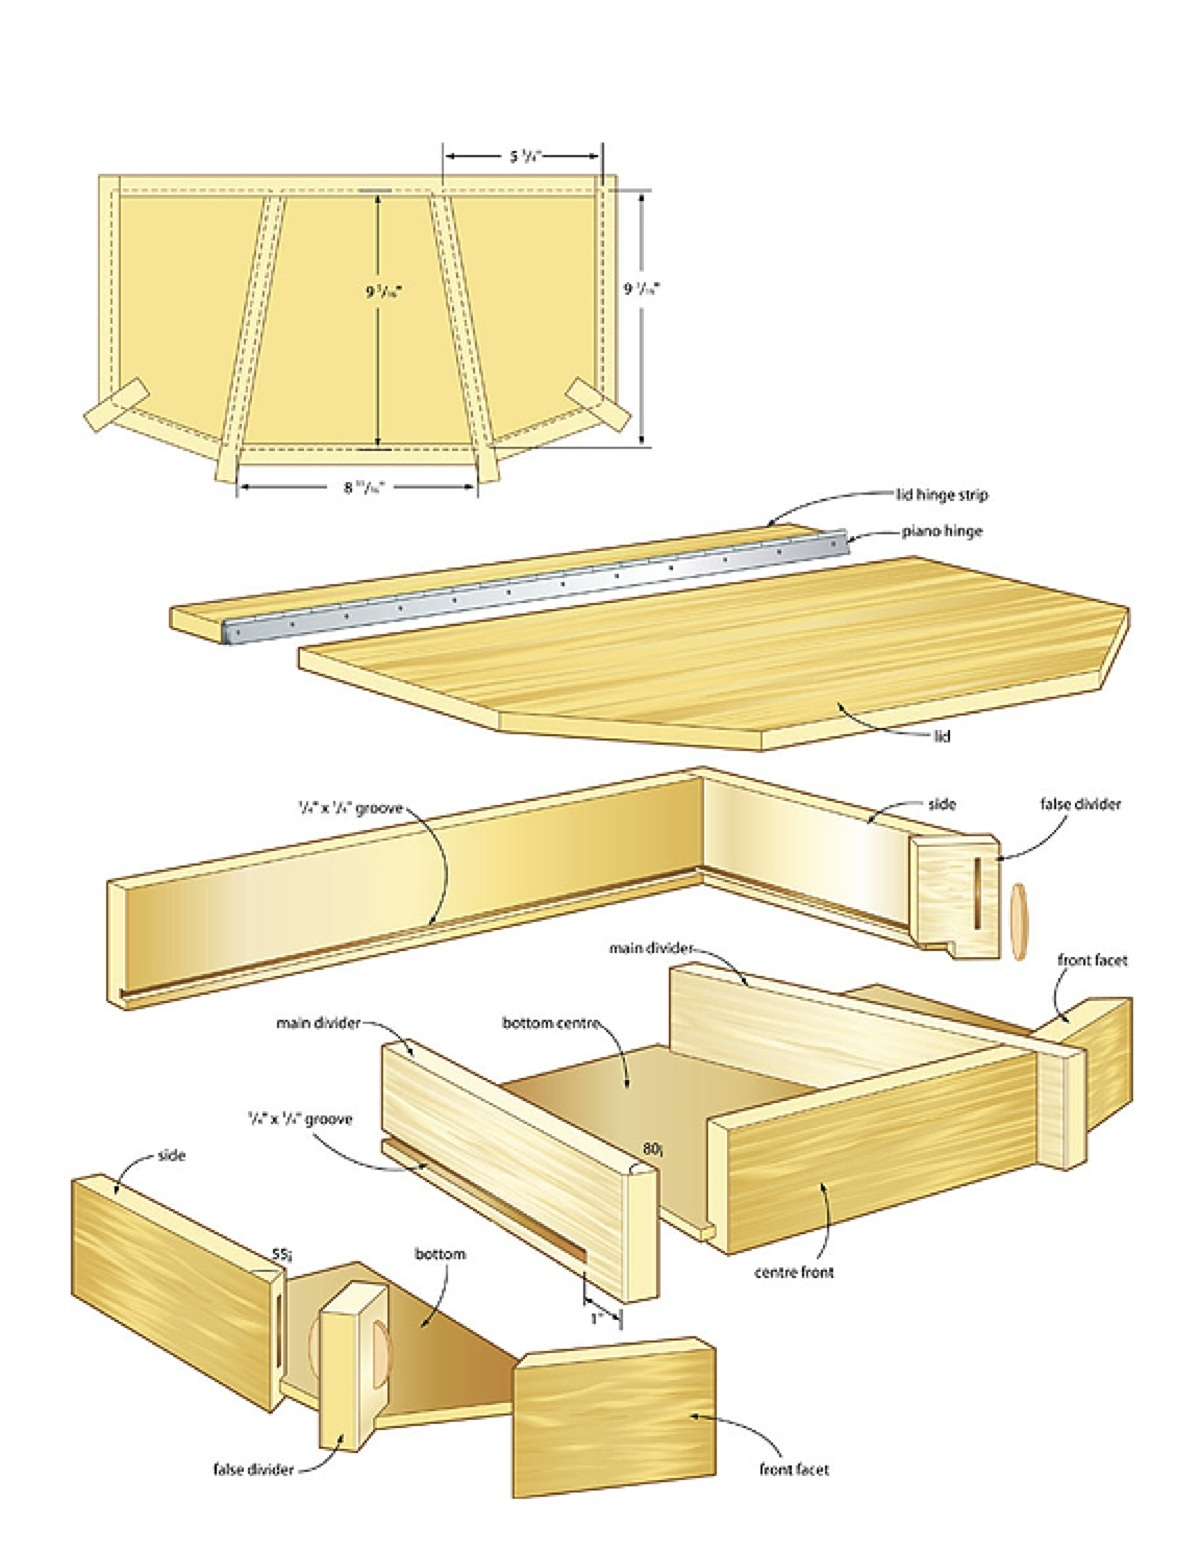 Plans to build Wooden Valet Plans PDF Plans